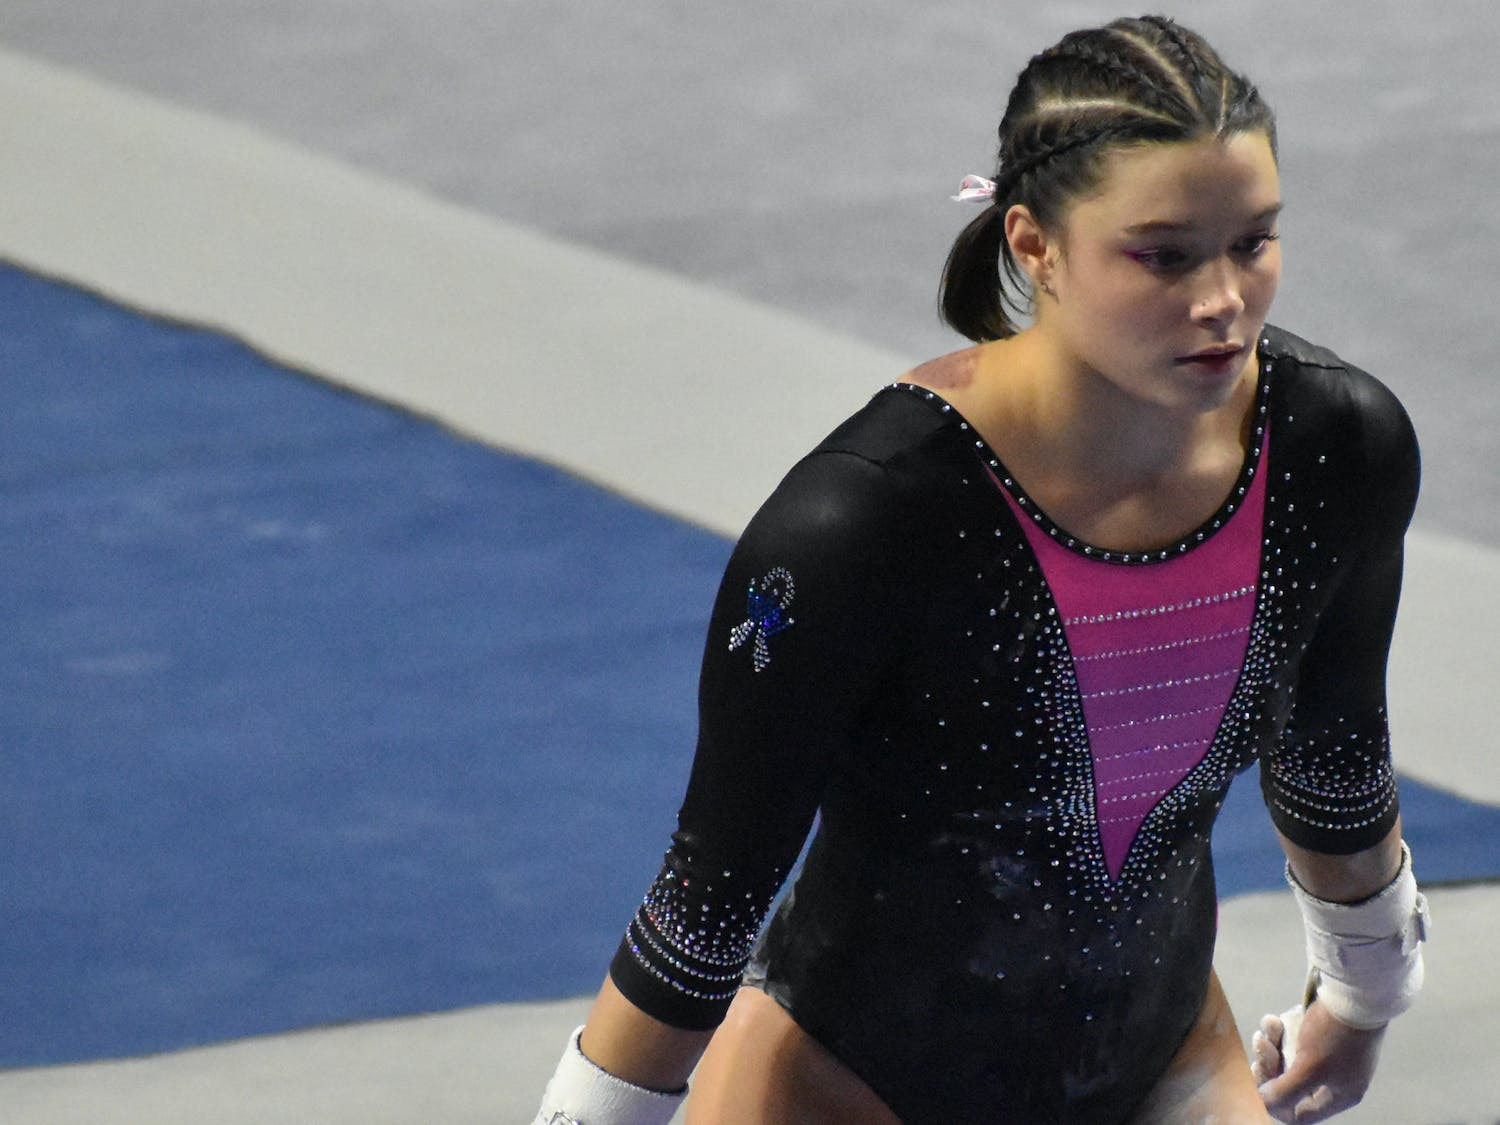 In the final rotation, Skaggs potentially ended her career on a high-note with a 9.9375.